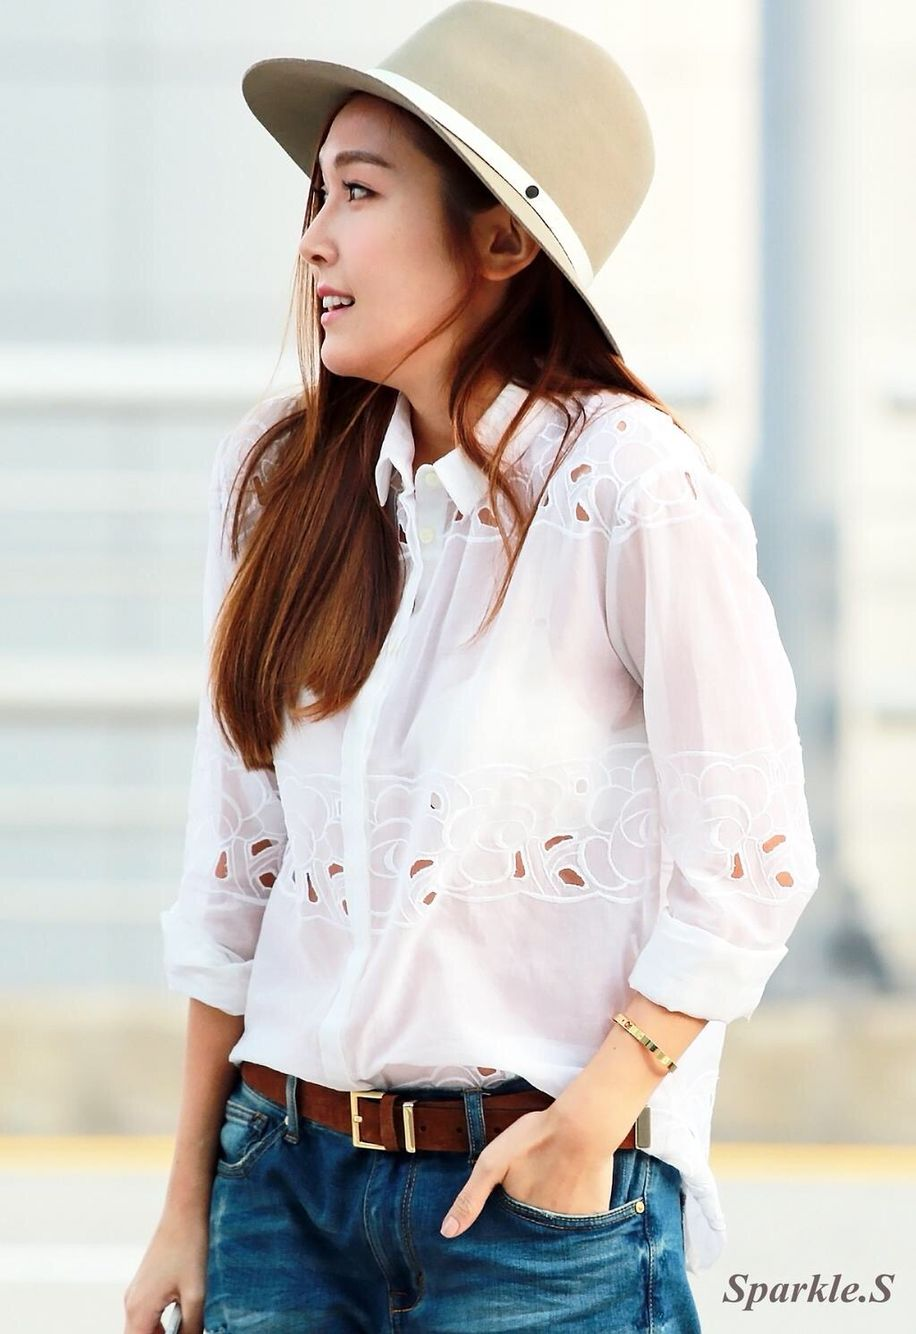 Slay with her fashion airport Jessica Jung